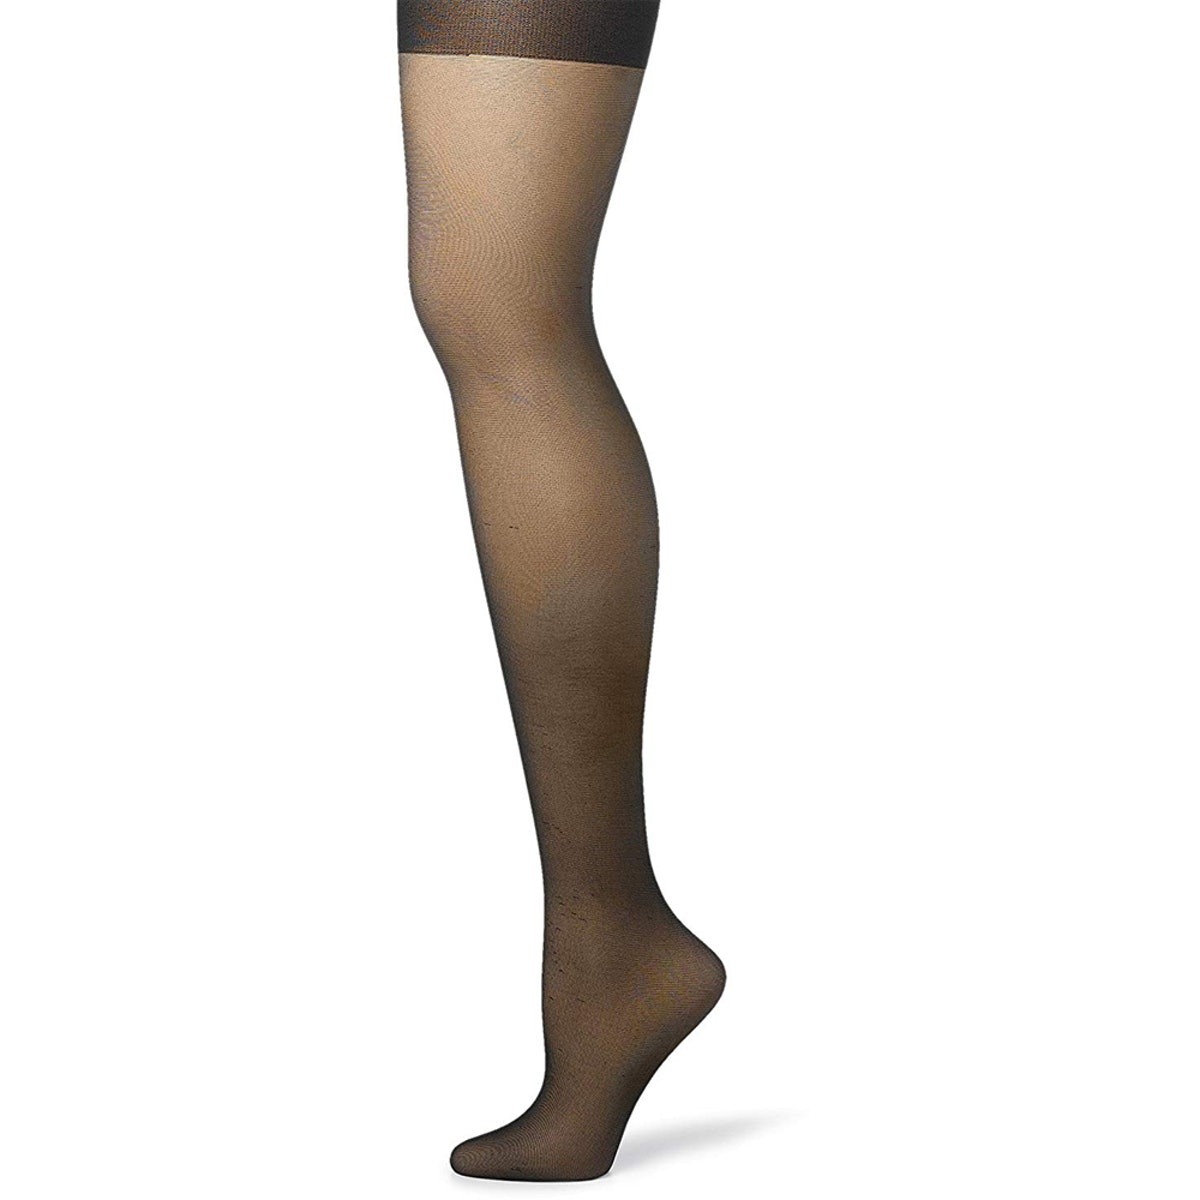 Hanes Silk Reflections Women's Sheer Tights, 3-Pack